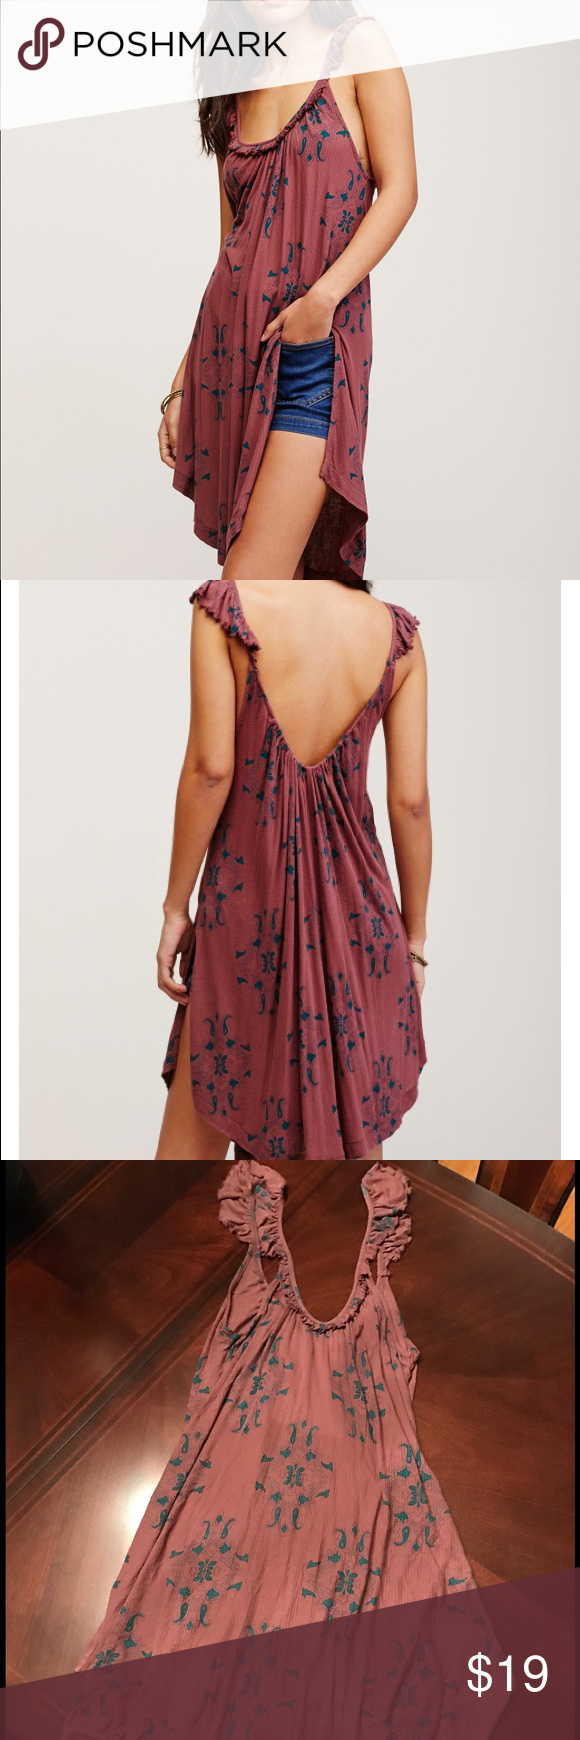 NWT Free People Drifter Tank! BRAND NEW WITH TAGS! Free People Drifter Tank! Can be worn as shirt or dress. Swingy tank in a lightweight ribbed fabrication with sweep ruffle detail along the neckline for a femme effect. Side vents and rounded hem make for an easy, effortless fit. Size XS. no trades  Free People Tops Tank Tops